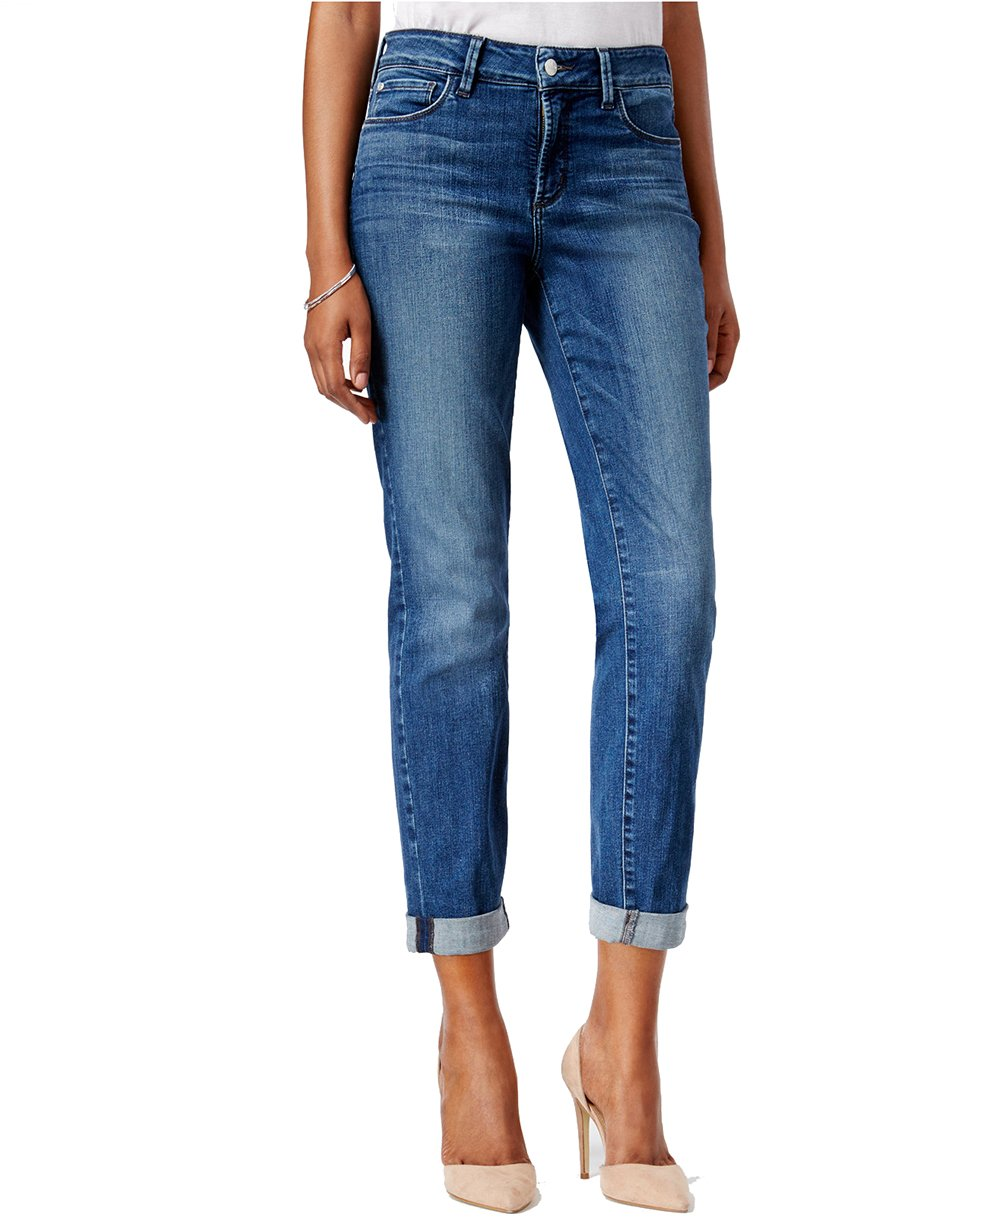 NYDJ Women's Sylvia Heyburn Wash Boyfriend Jeans (8, Mayfair Clean)